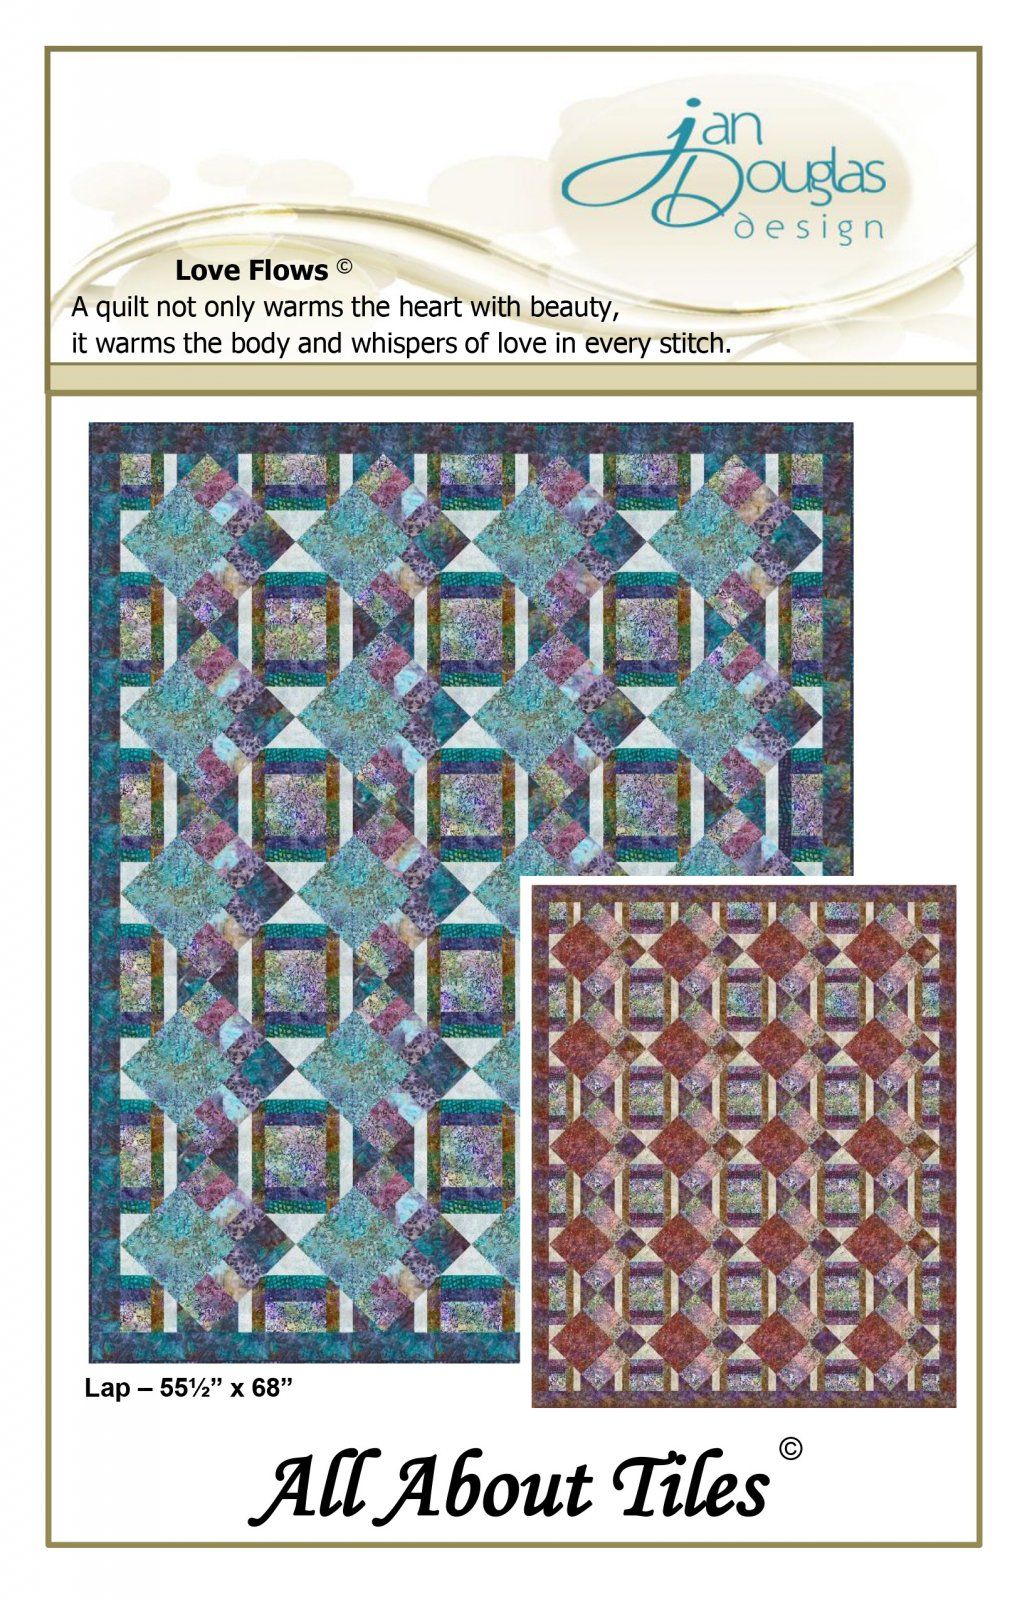 All About Tiles Pattern (Kits Available)